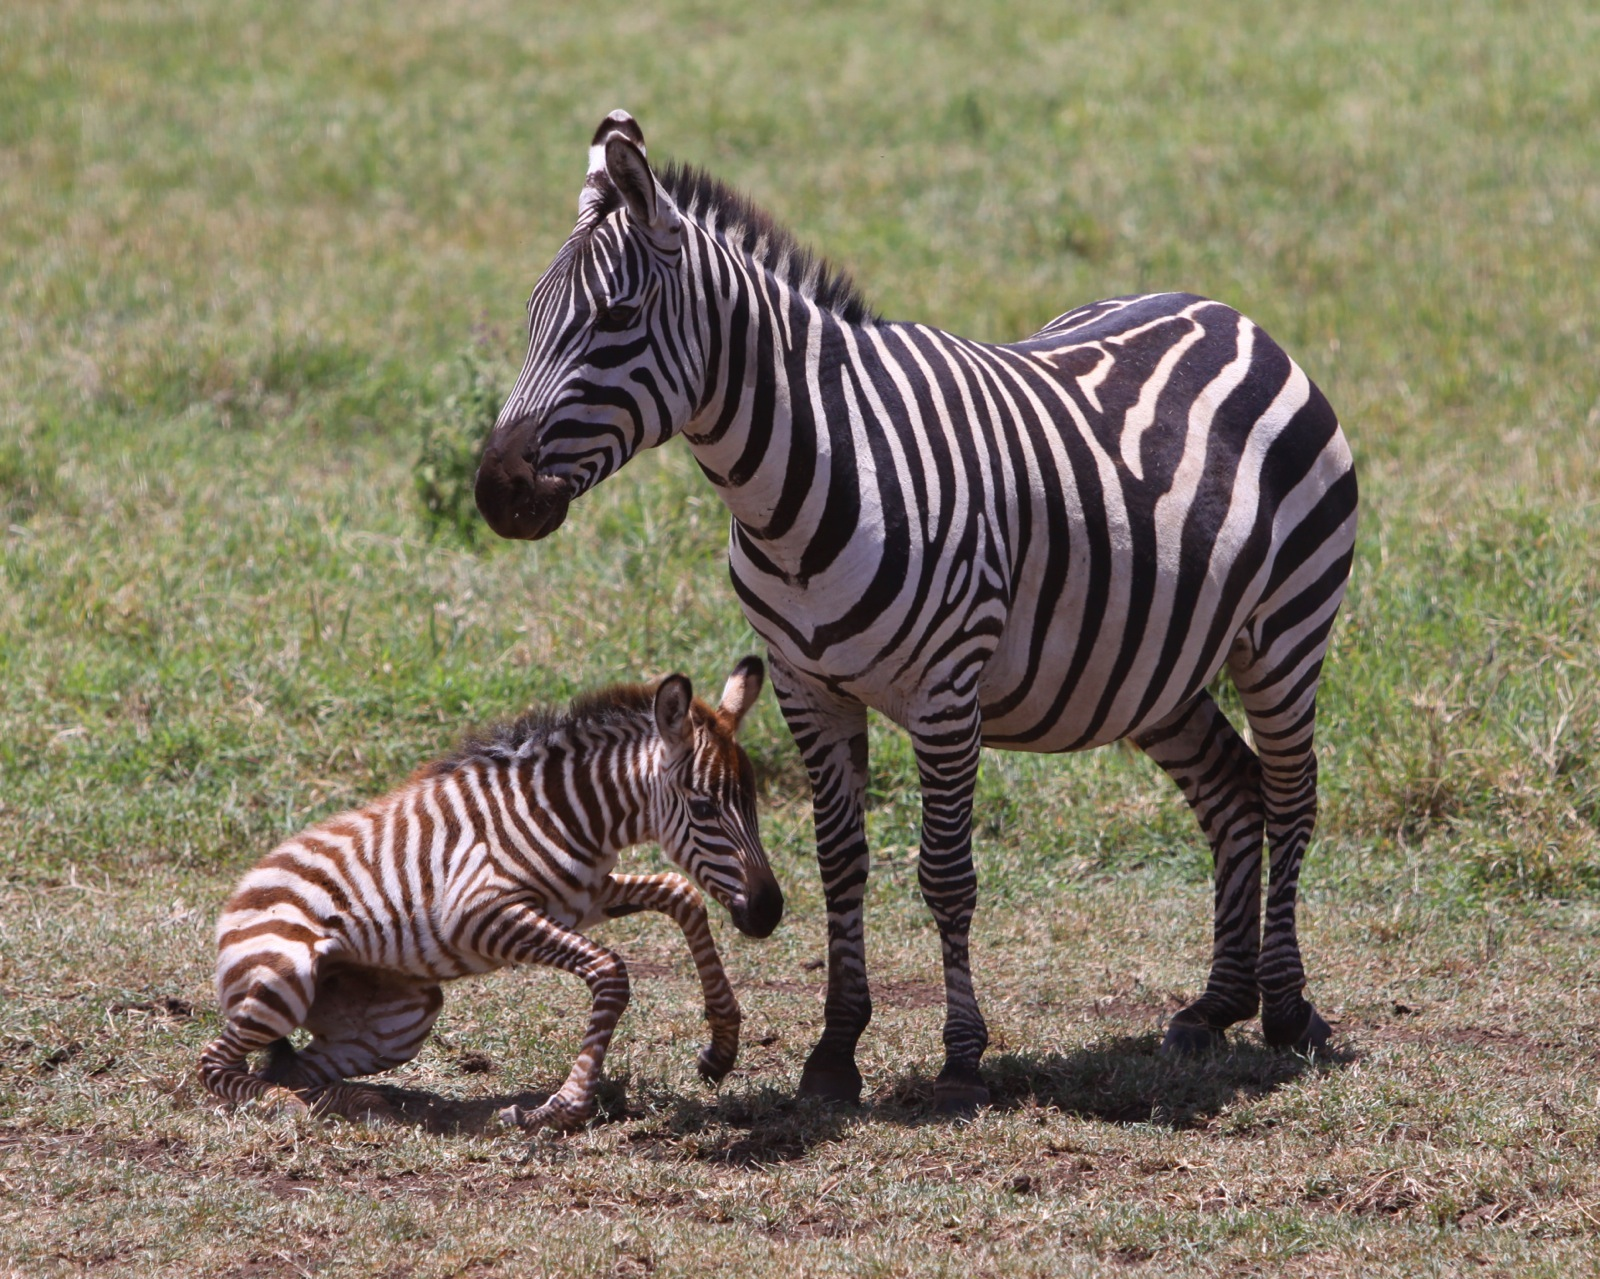 A baby zebra tries to stand up next to its mother.